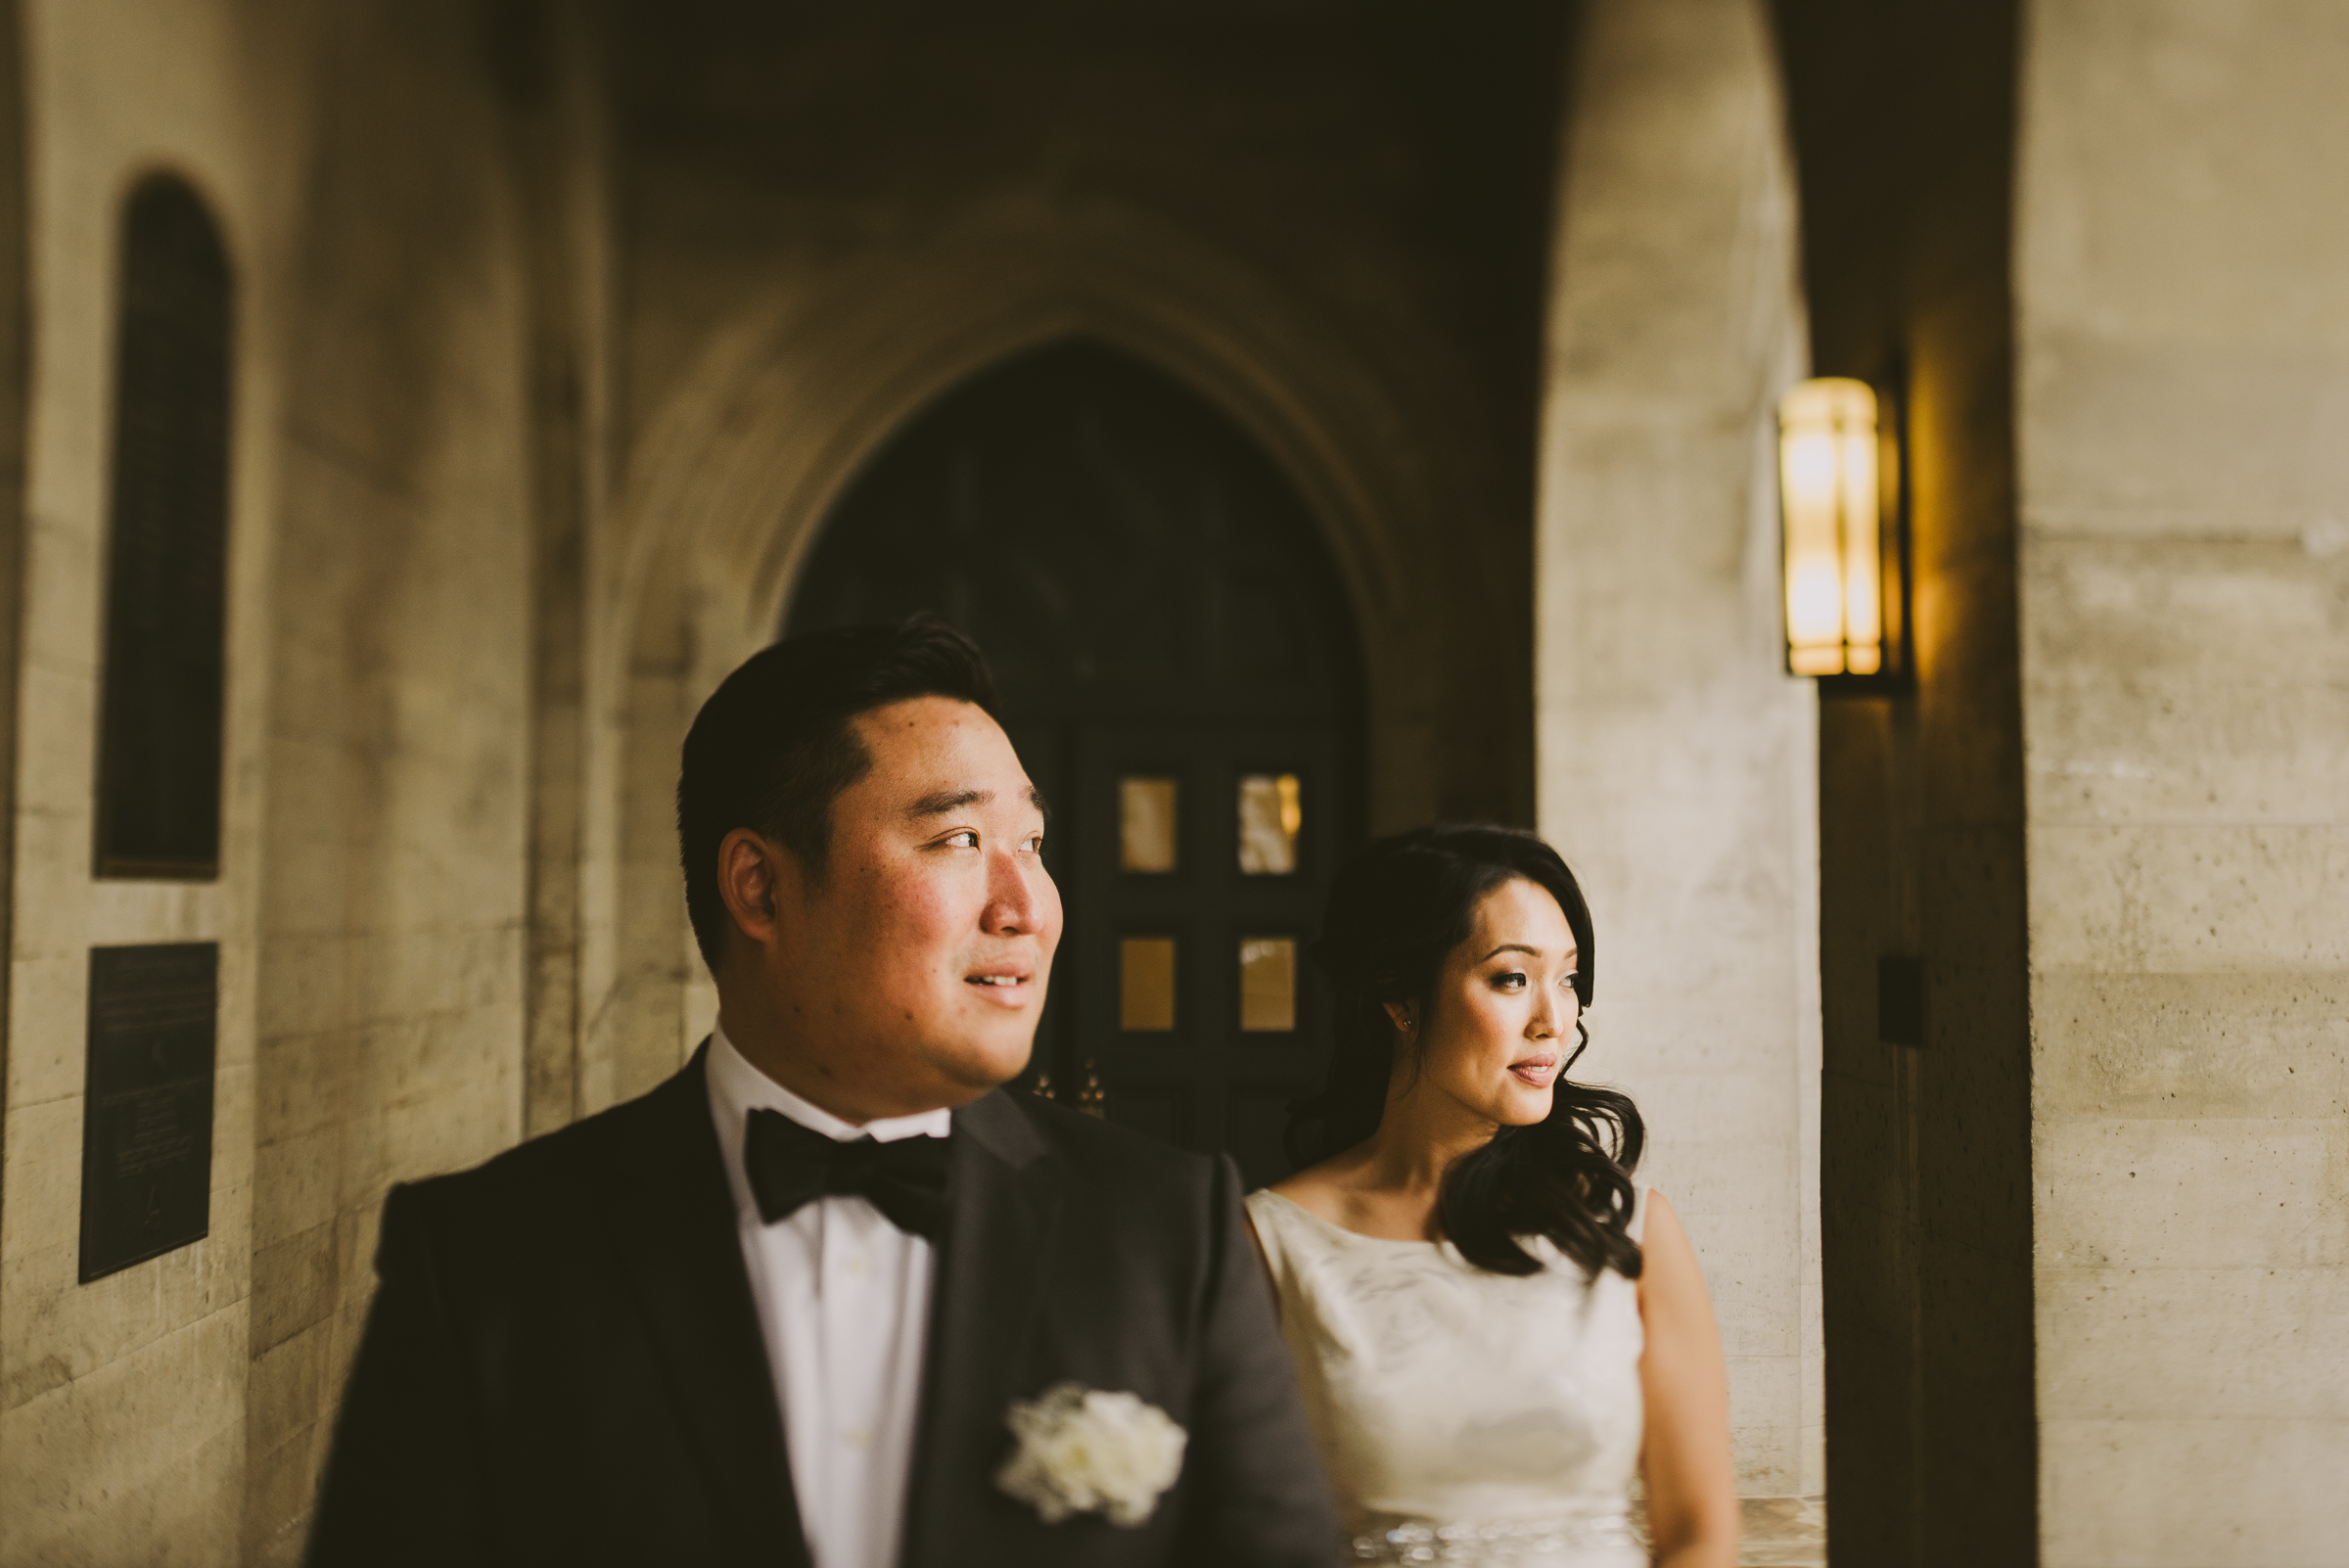 ©Isaiah + Taylor Photography - David + Grace - Wedding - 20170115 07952.jpg